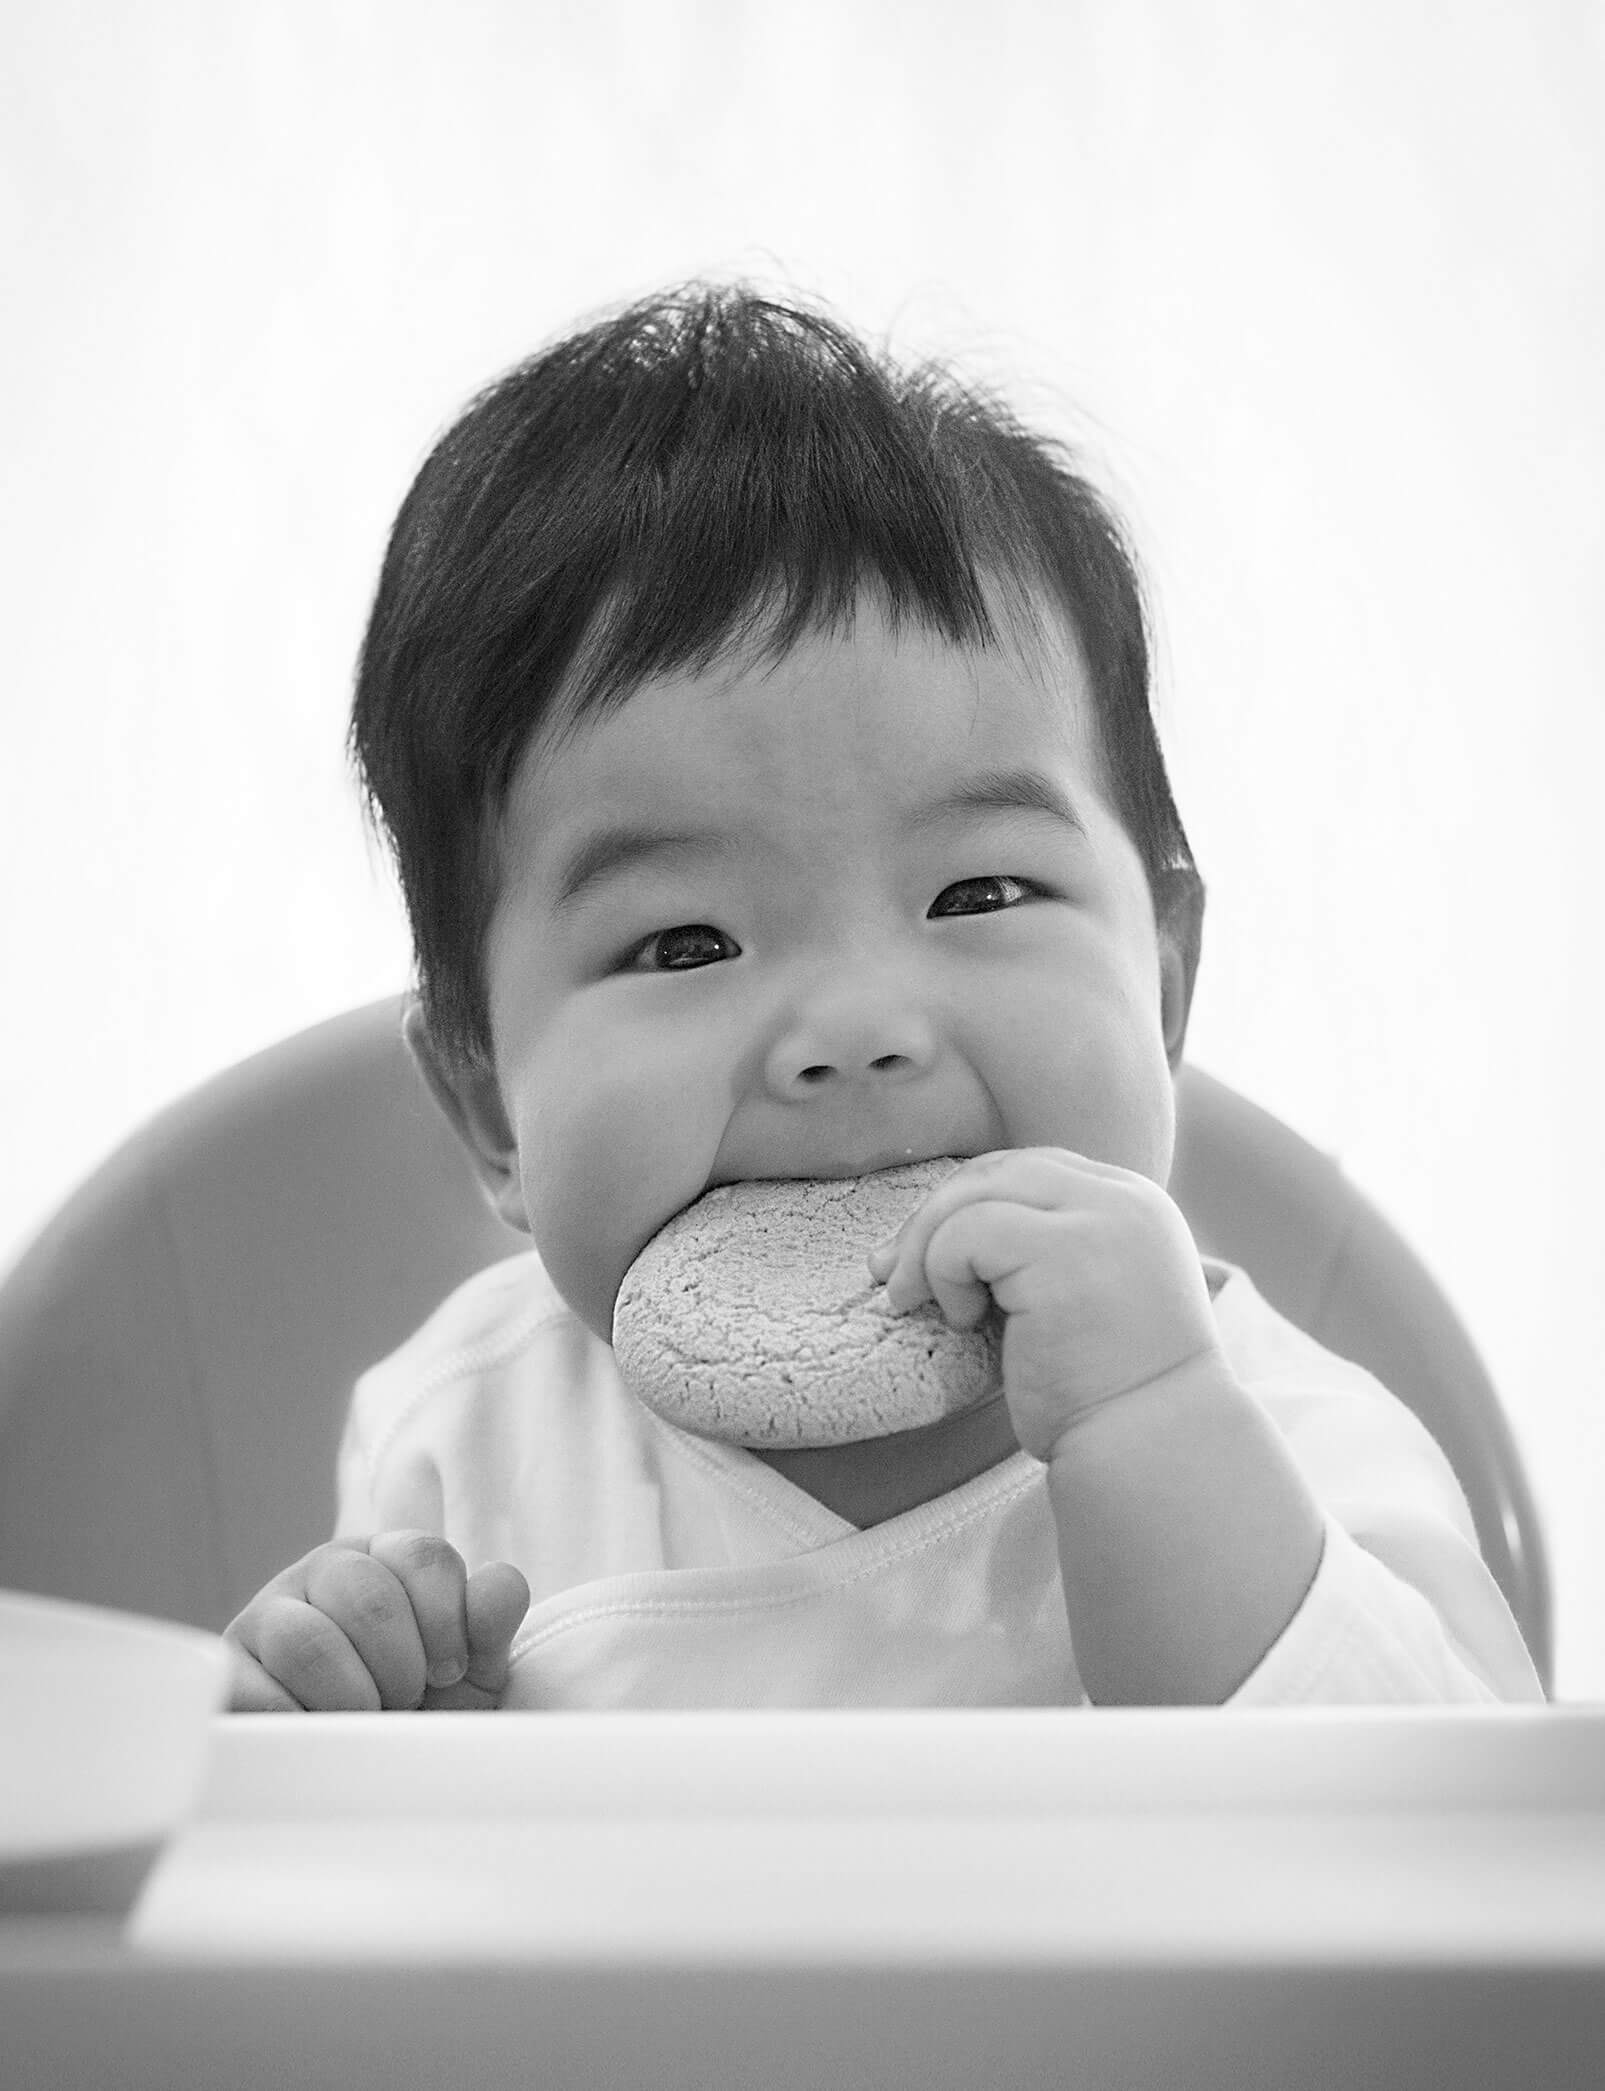 Baby eating biscuit